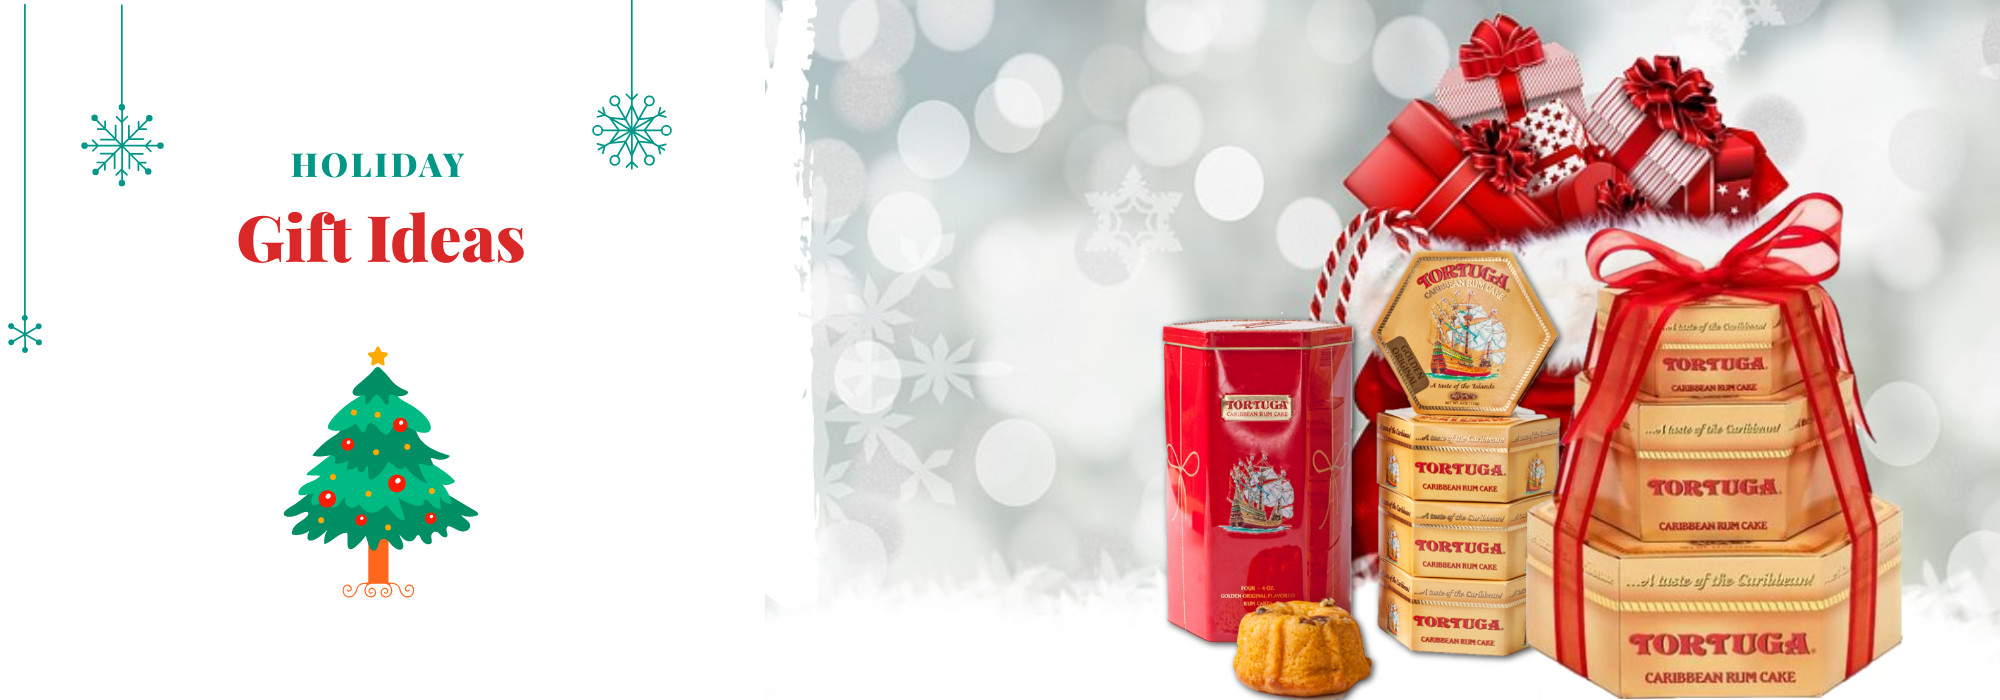 christmas-gift-ideas-landing-page-banner.jpg